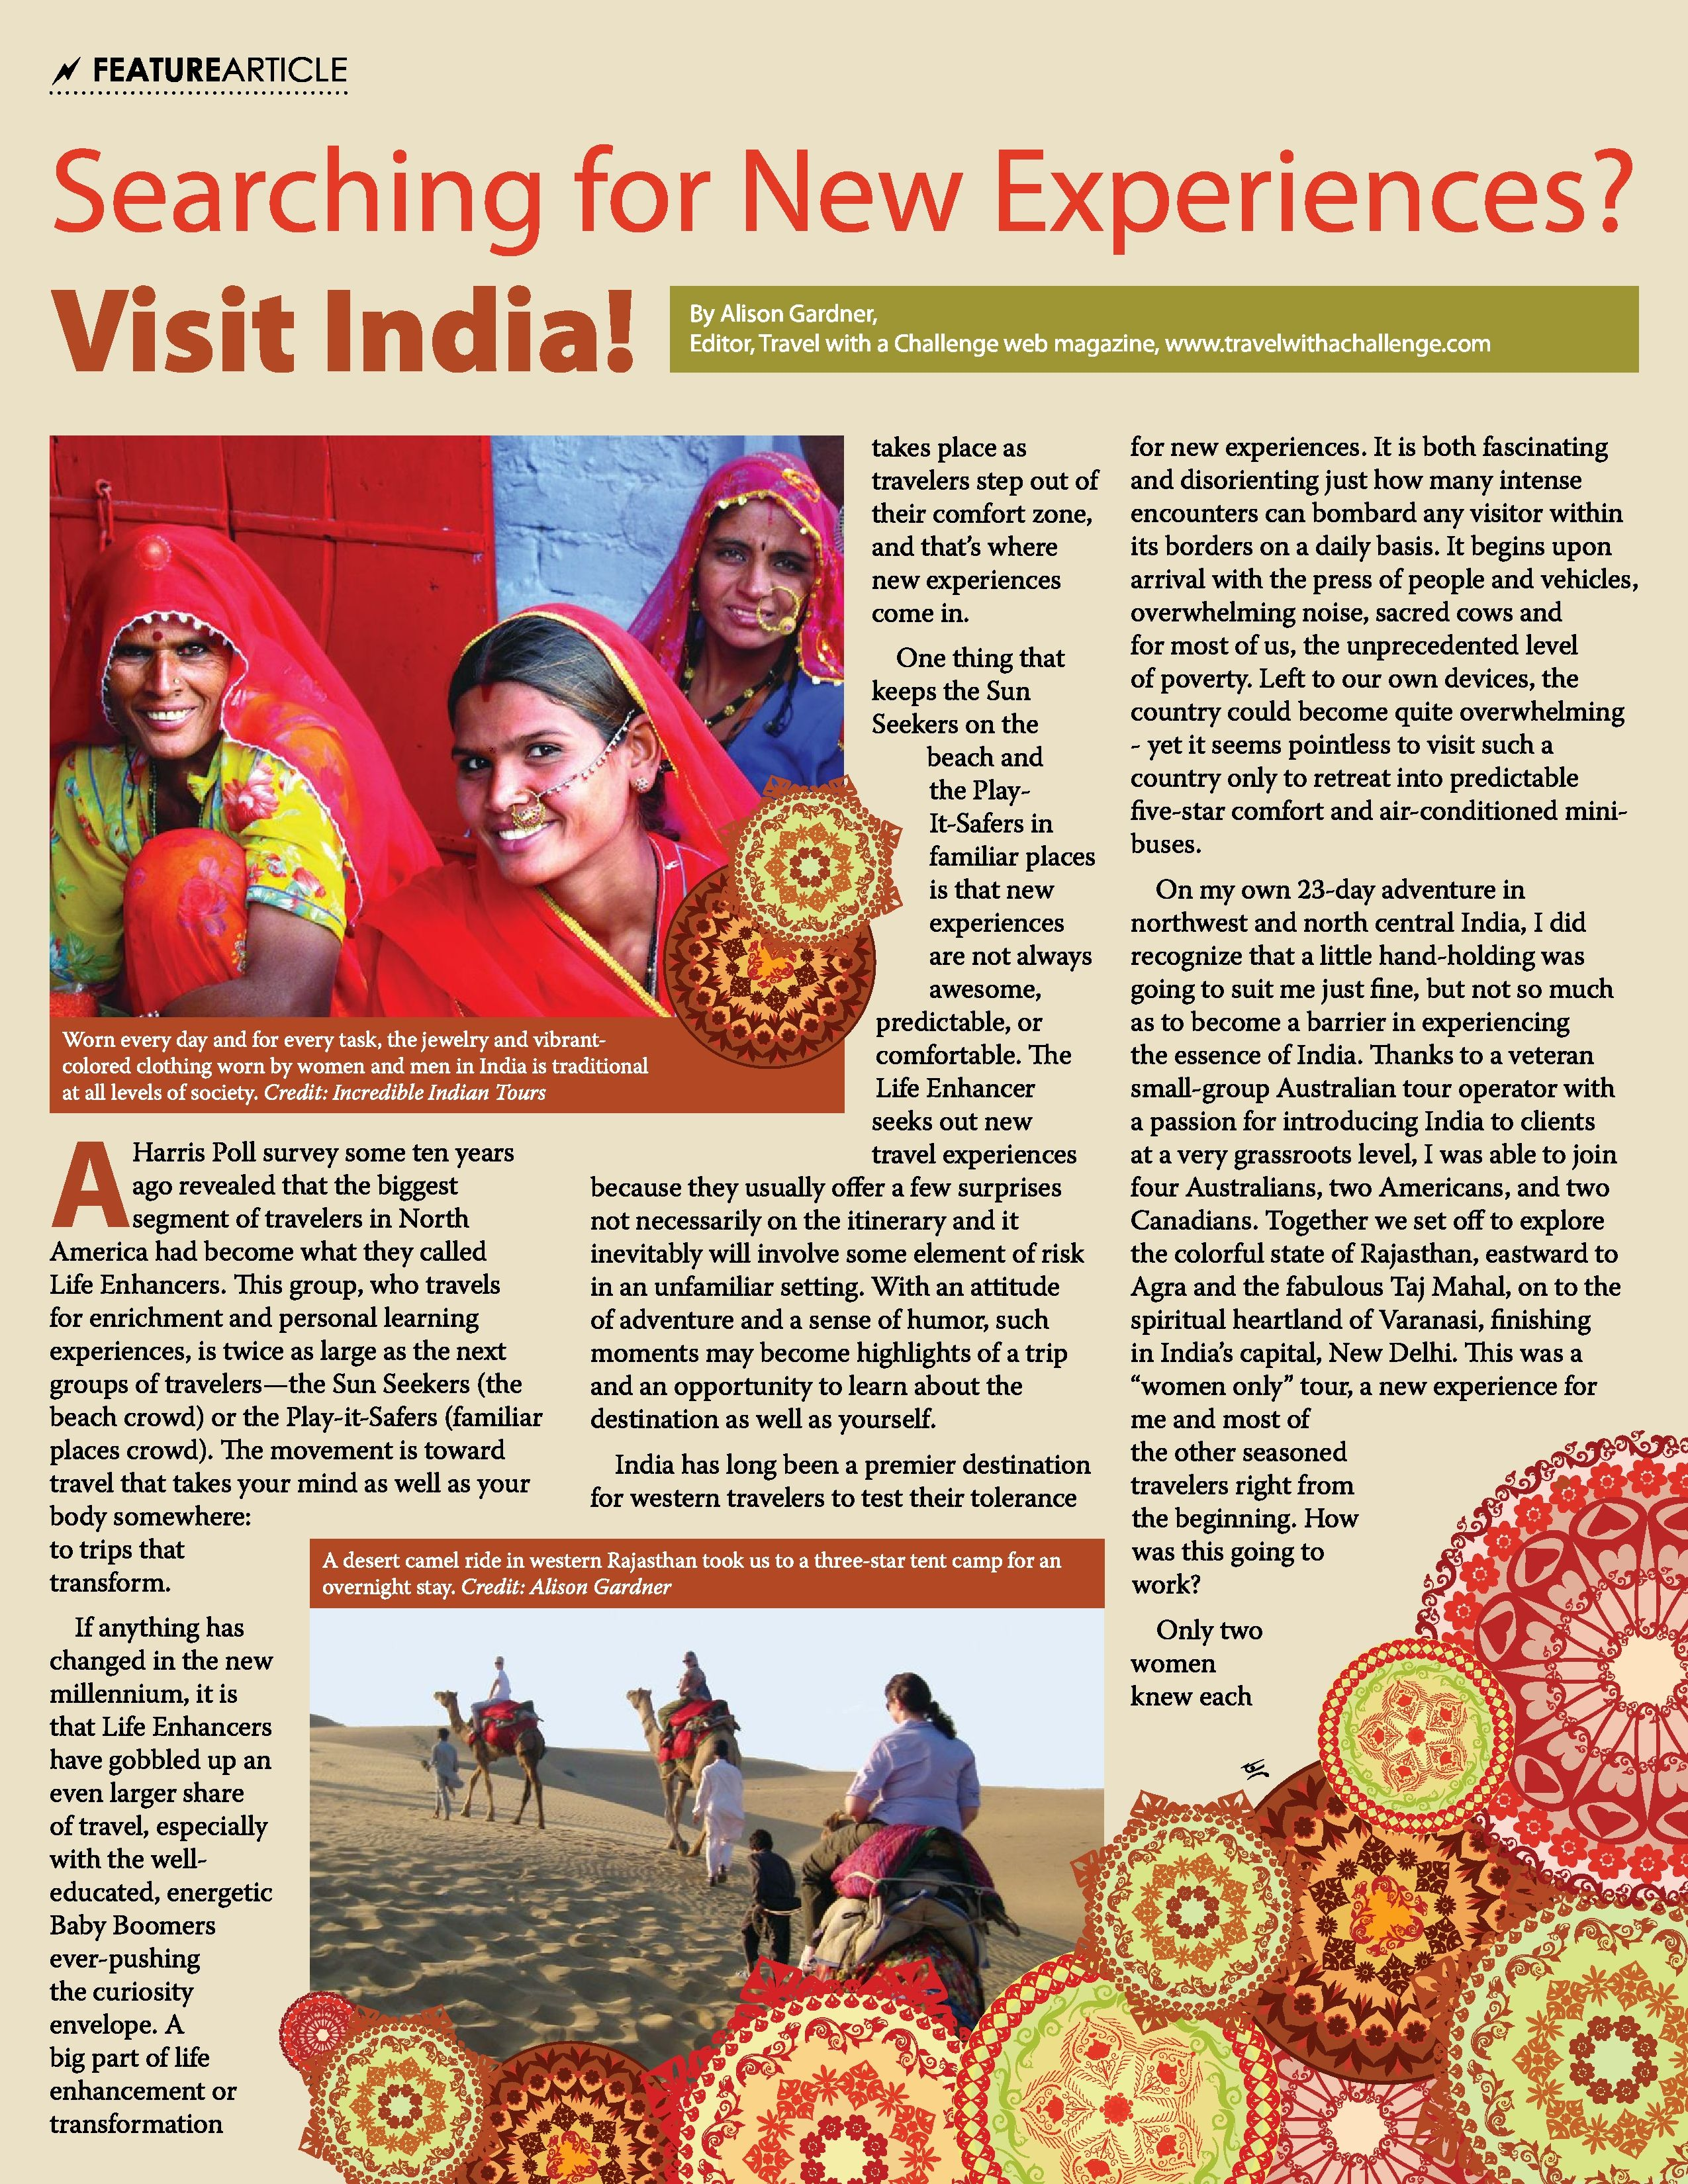 Thor Advantage Magazine Article on Incredible Indian Tours by Alison Gardner